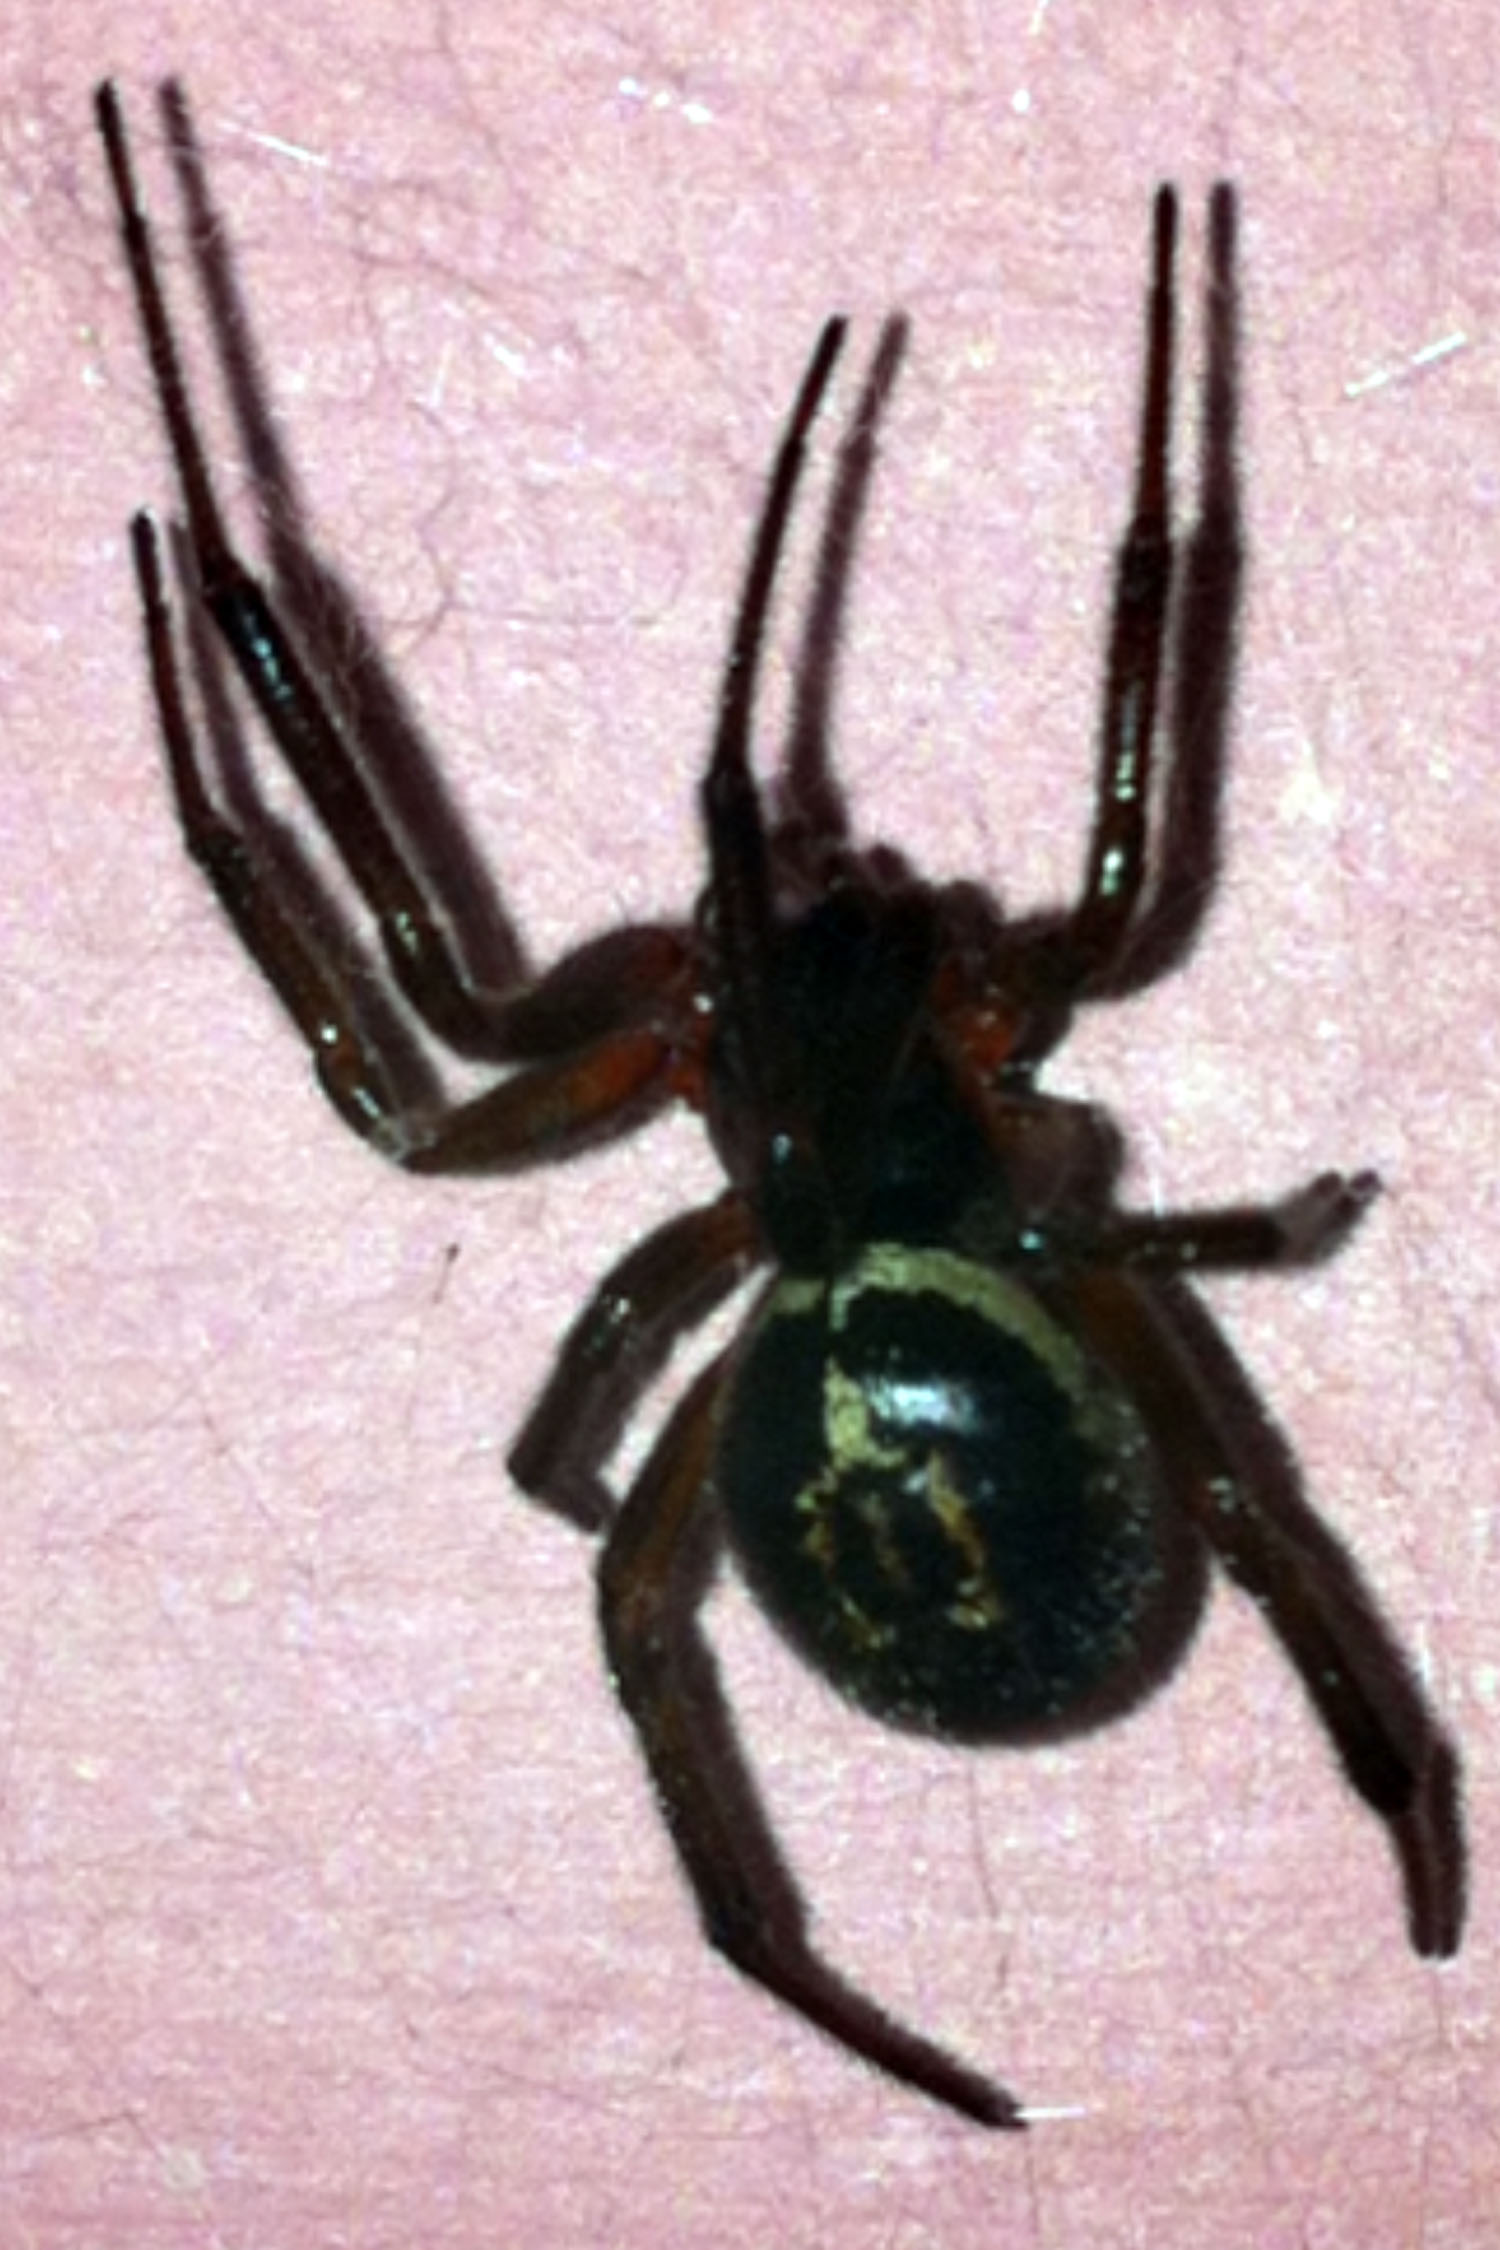 Blackfen tattooist bitten by deadly false widow spider